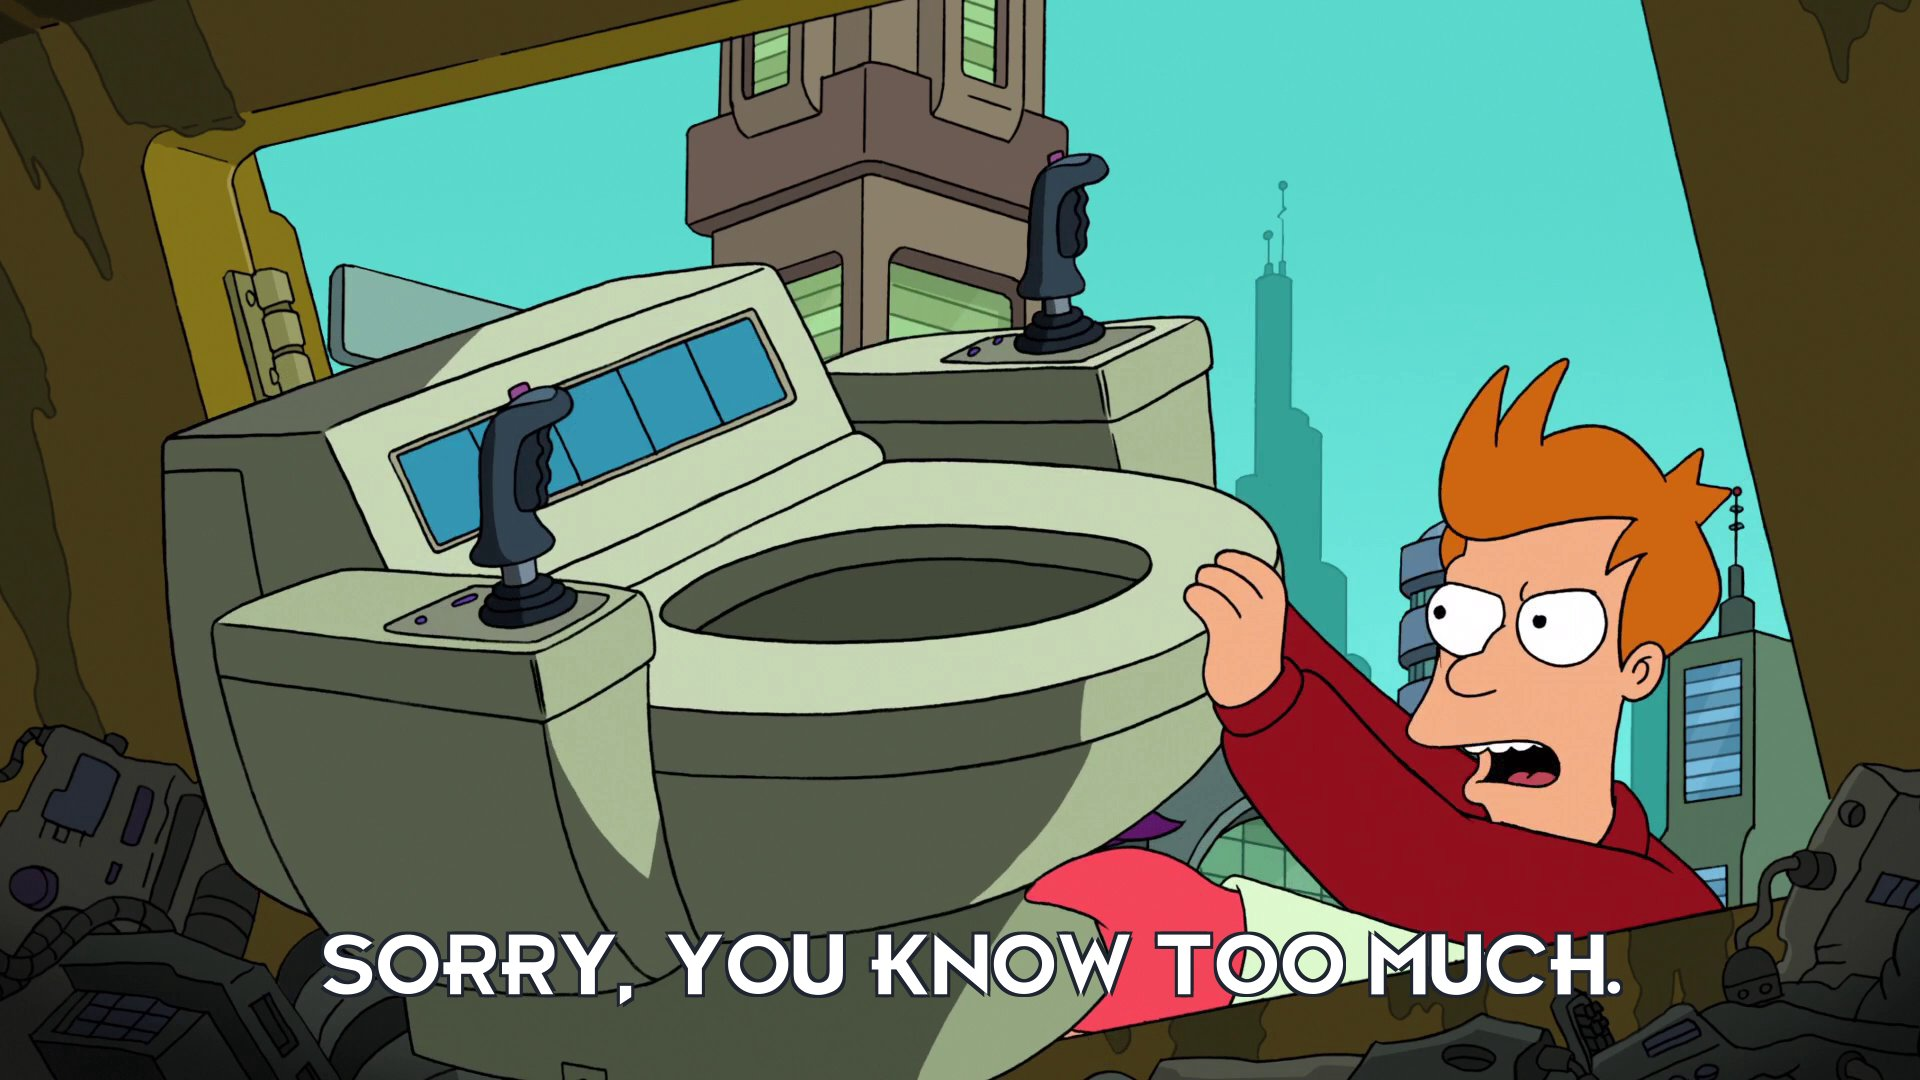 Philip J Fry: Sorry, you know too much.